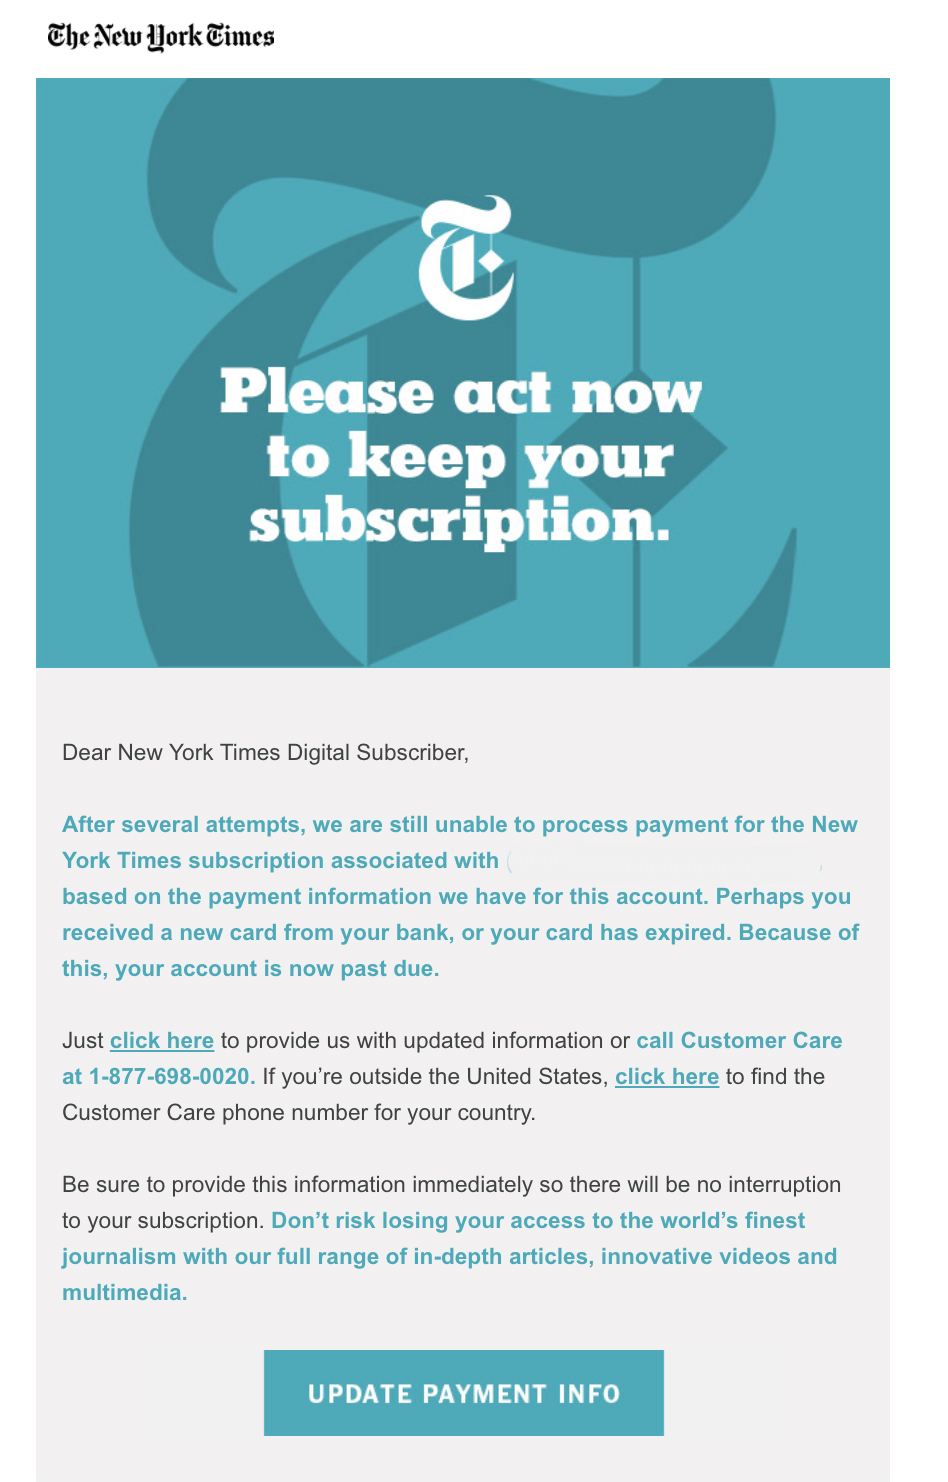 best transactional emails The New York Times